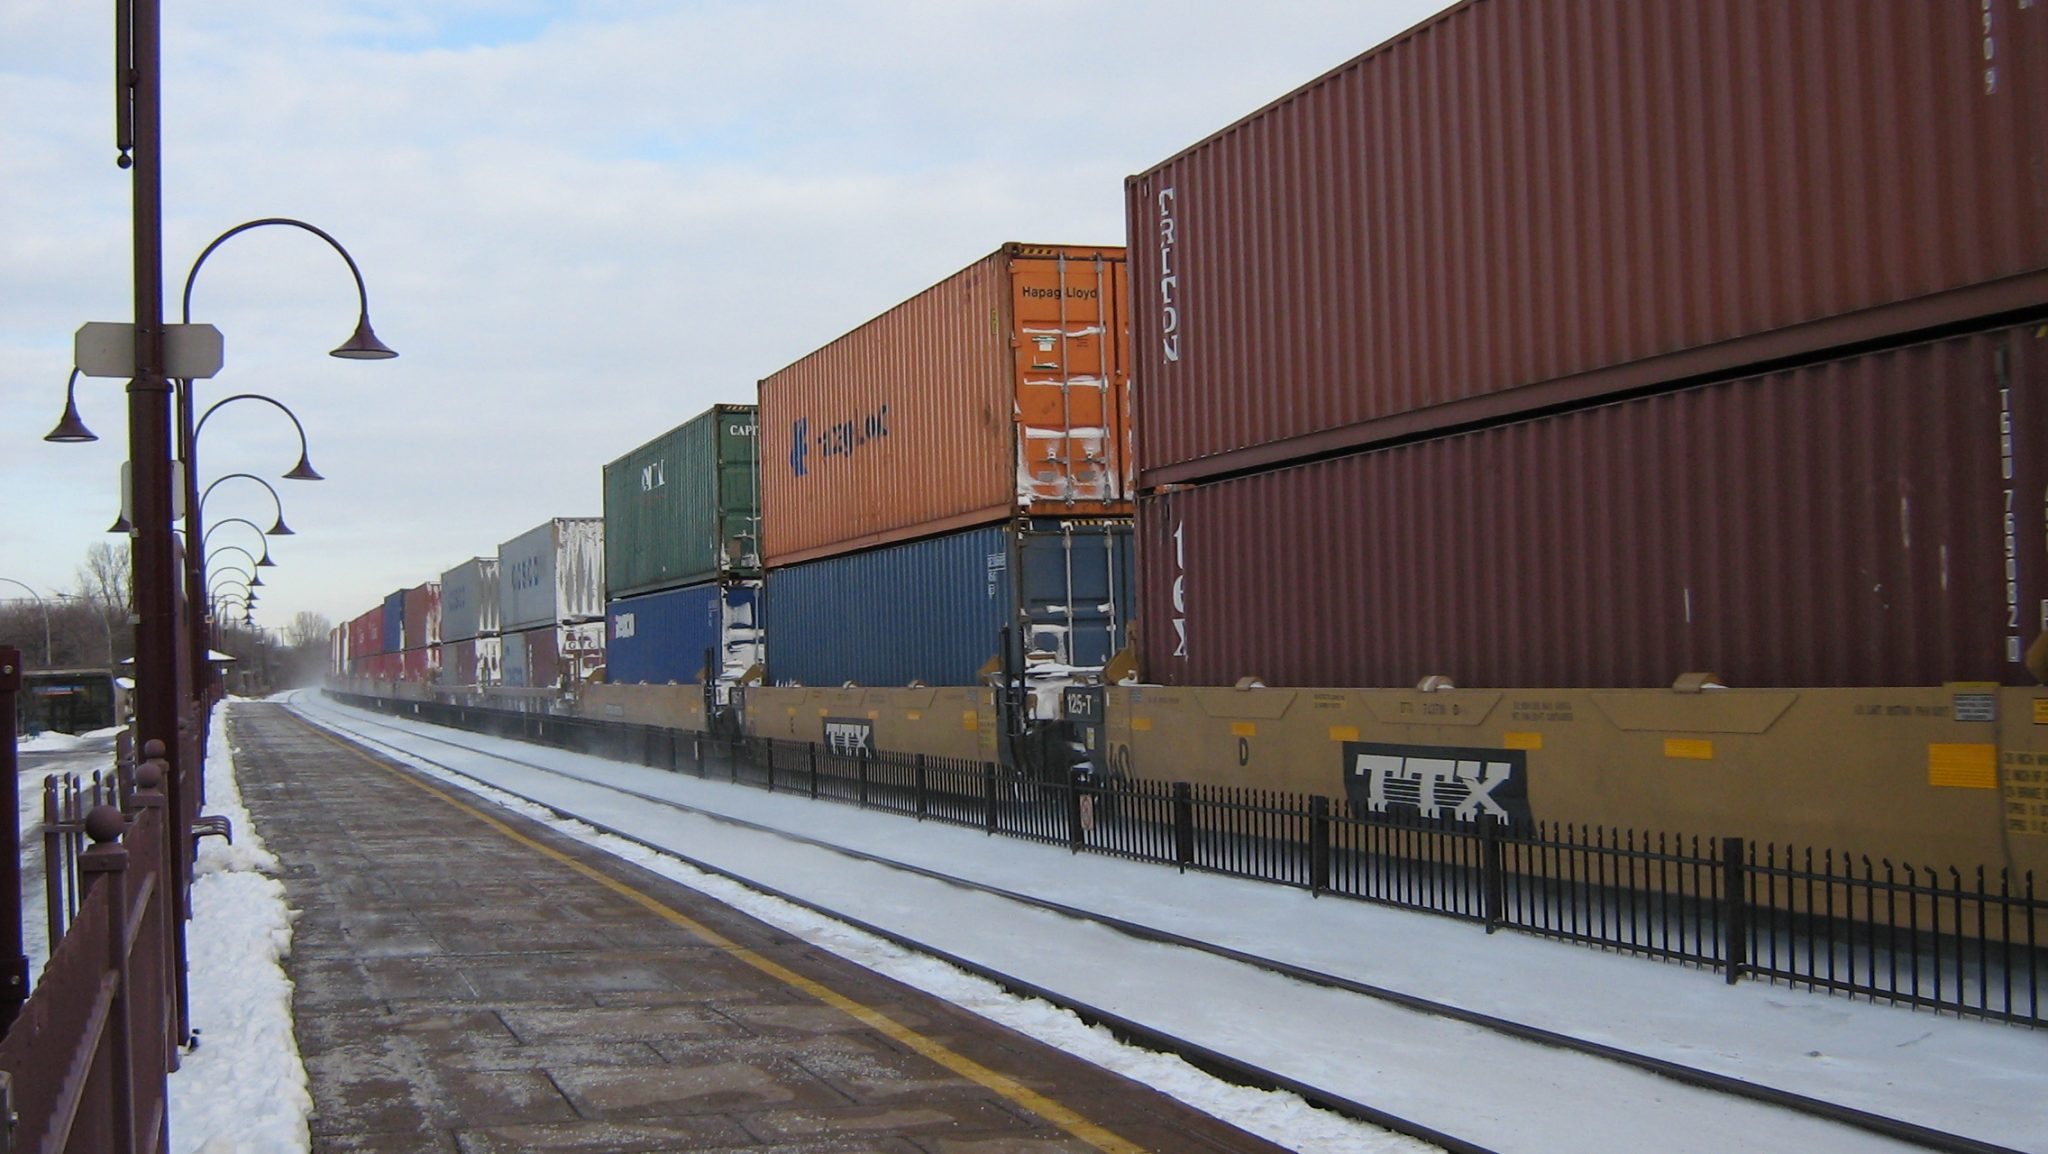 https://upload.wikimedia.org/wikipedia/commons/thumb/6/6a/Double_stack_intermodal_container_train._%283119035814%29.jpg/800px-Double_stack_intermodal_container_train._%283119035814%29.jpg